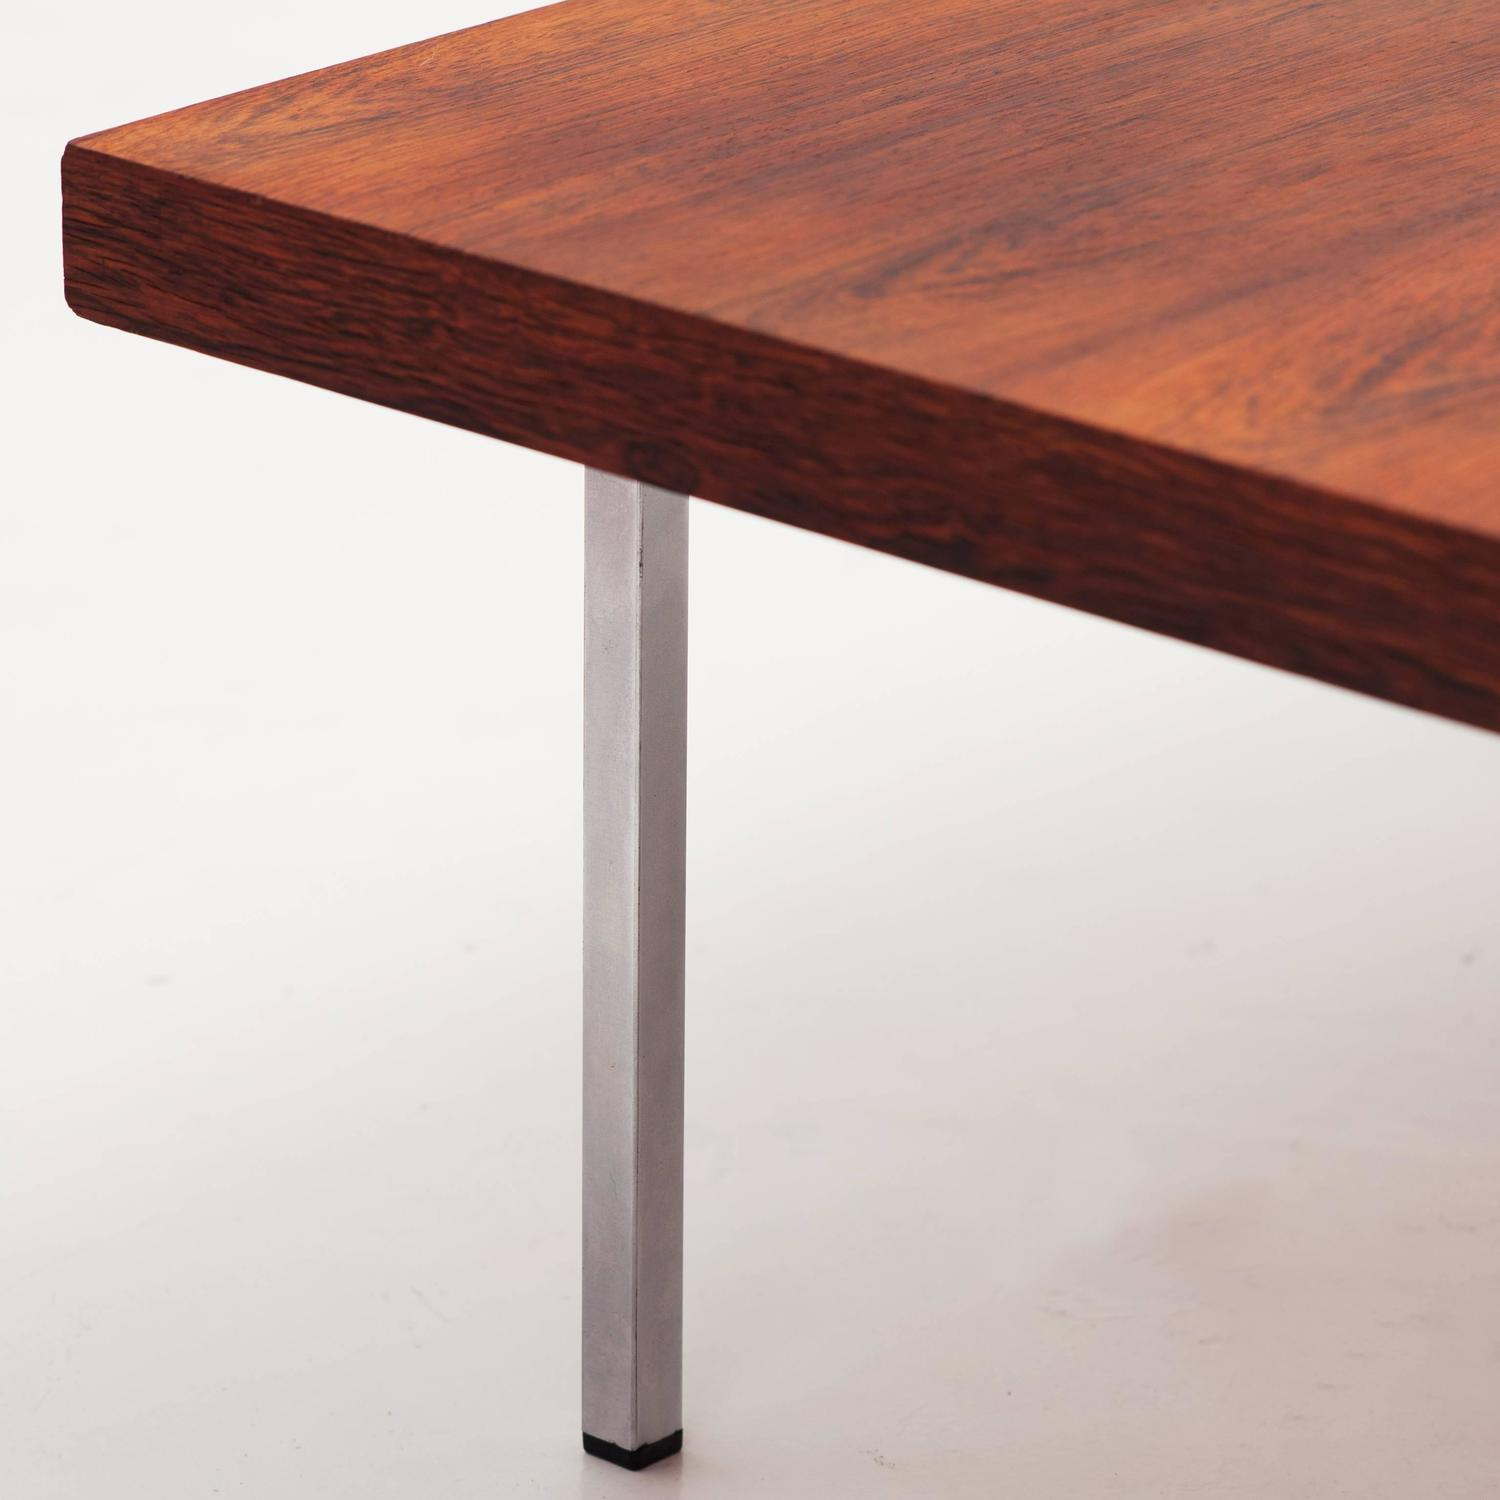 Table basse pied metal - Table ronde pied metal ...